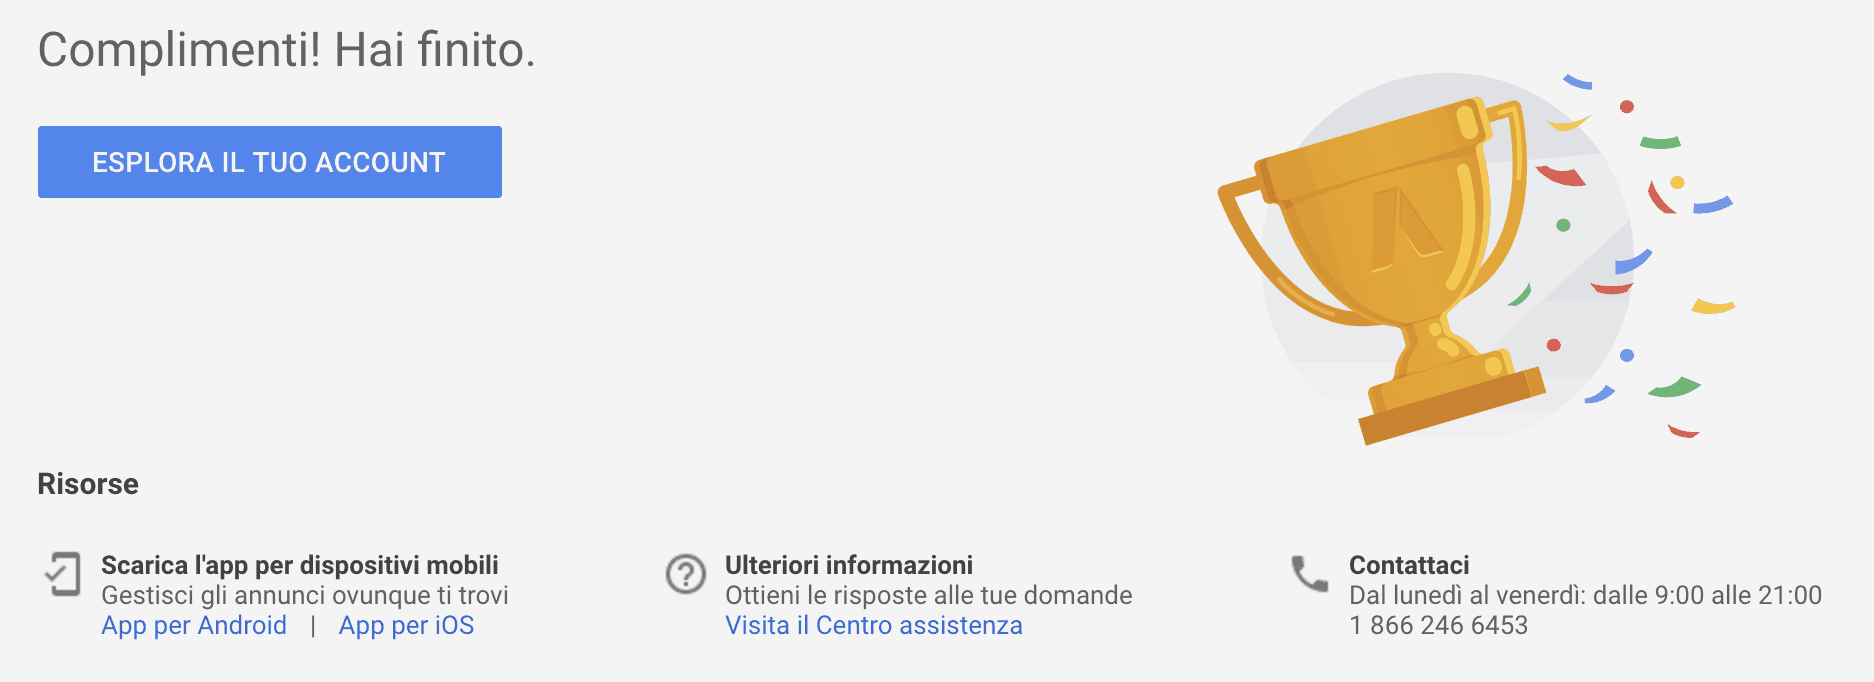 configurazione account google ads terminata